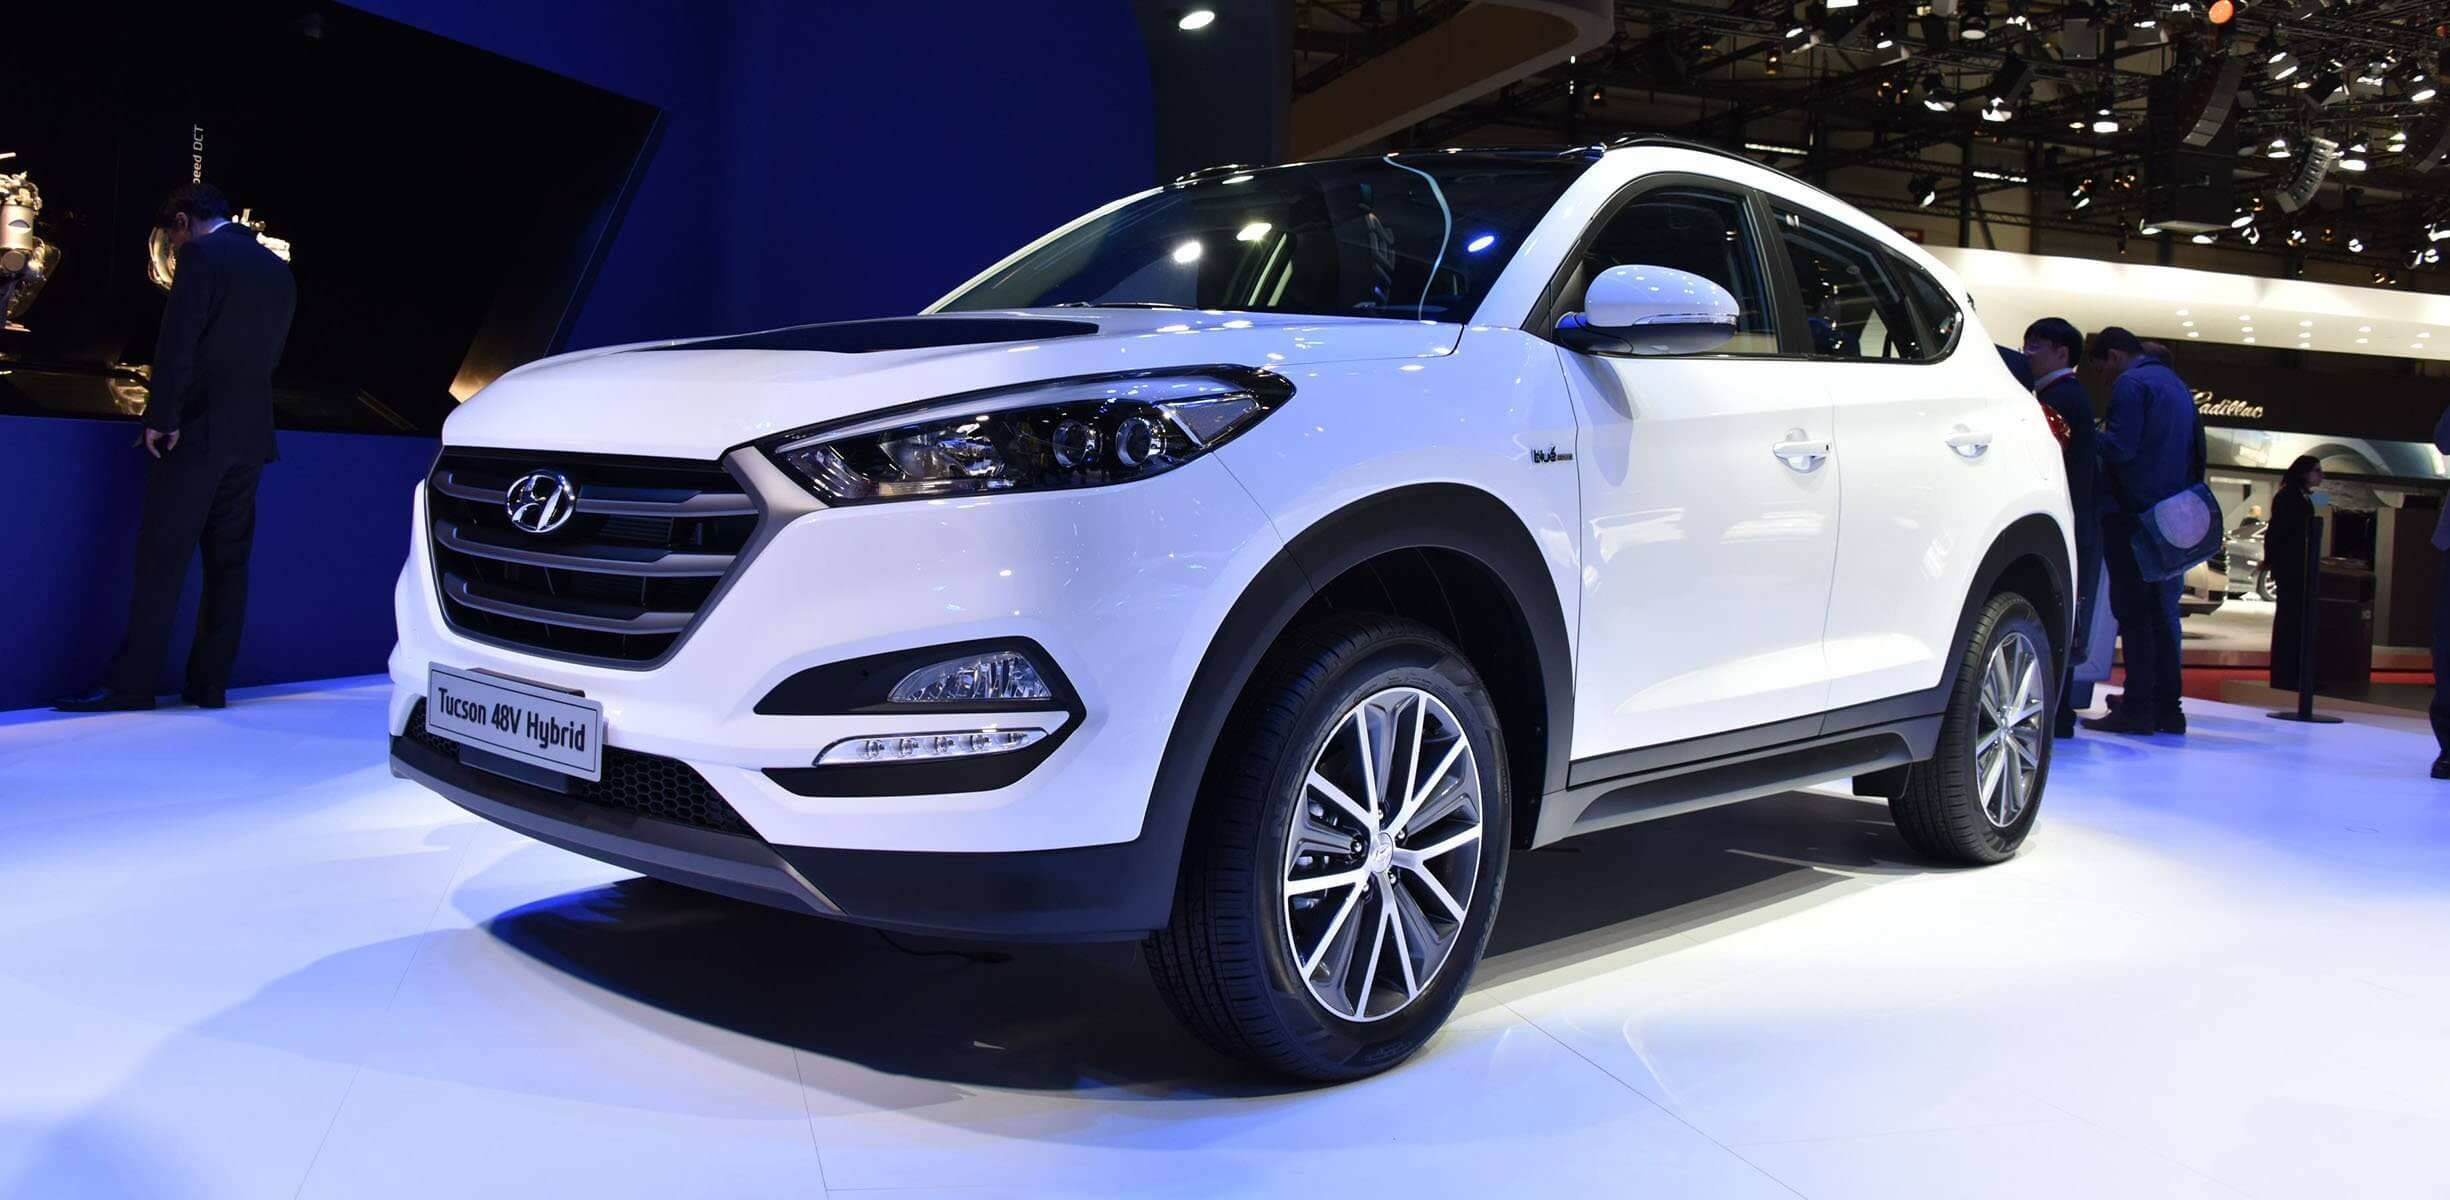 53 Great 2020 Hyundai Ix35 Rumors with 2020 Hyundai Ix35